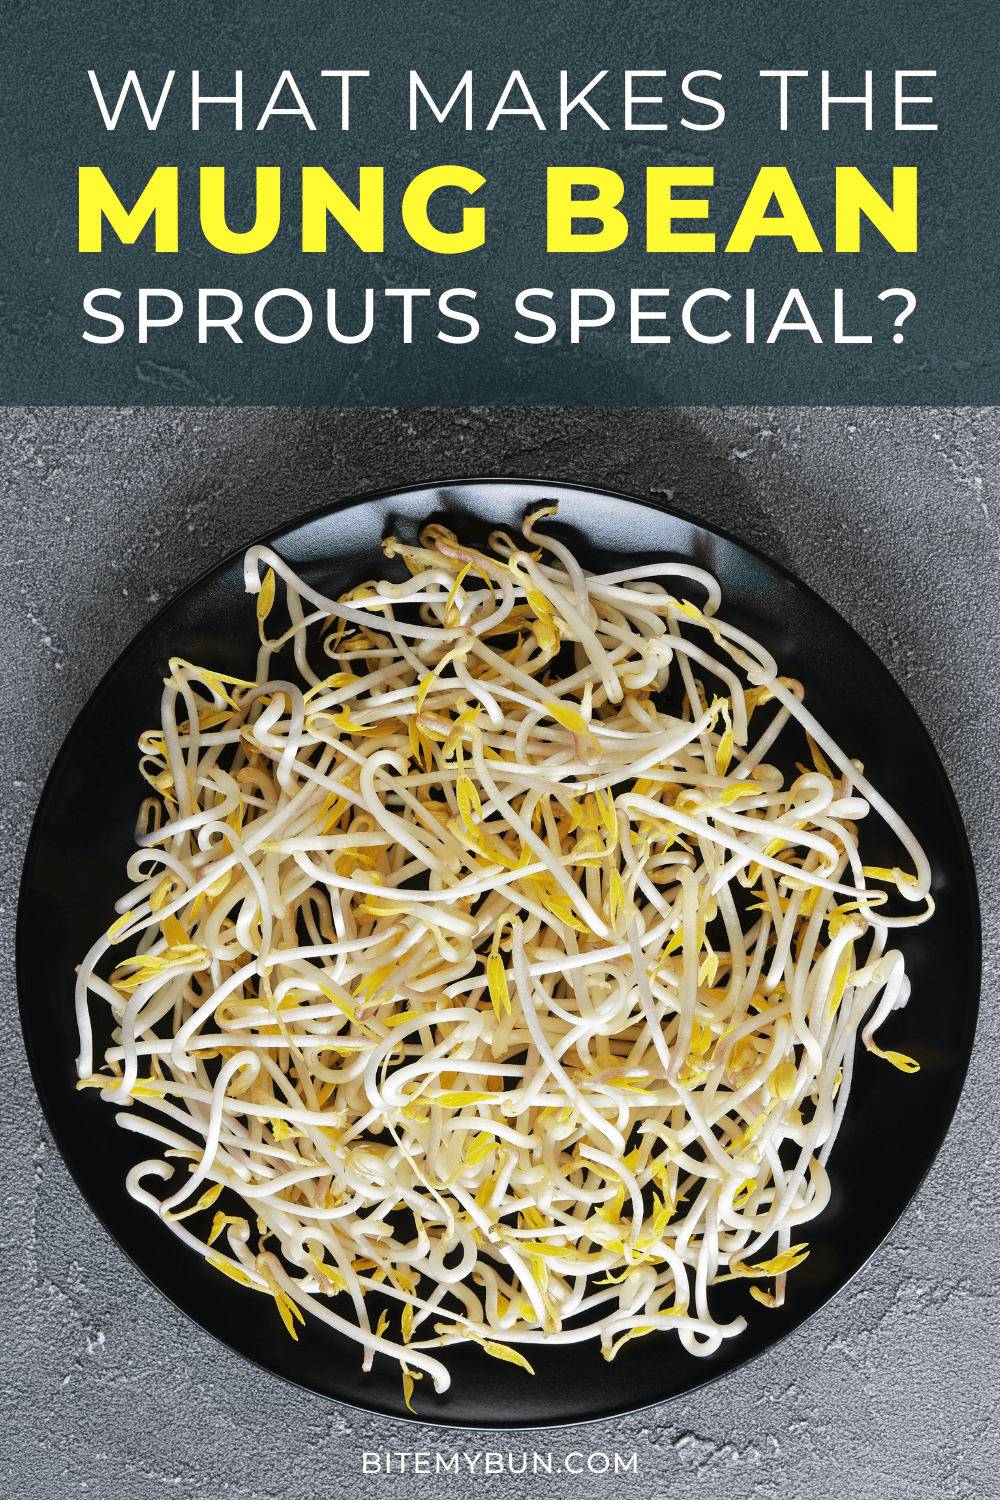 What Makes the Mung Bean Sprouts Special?